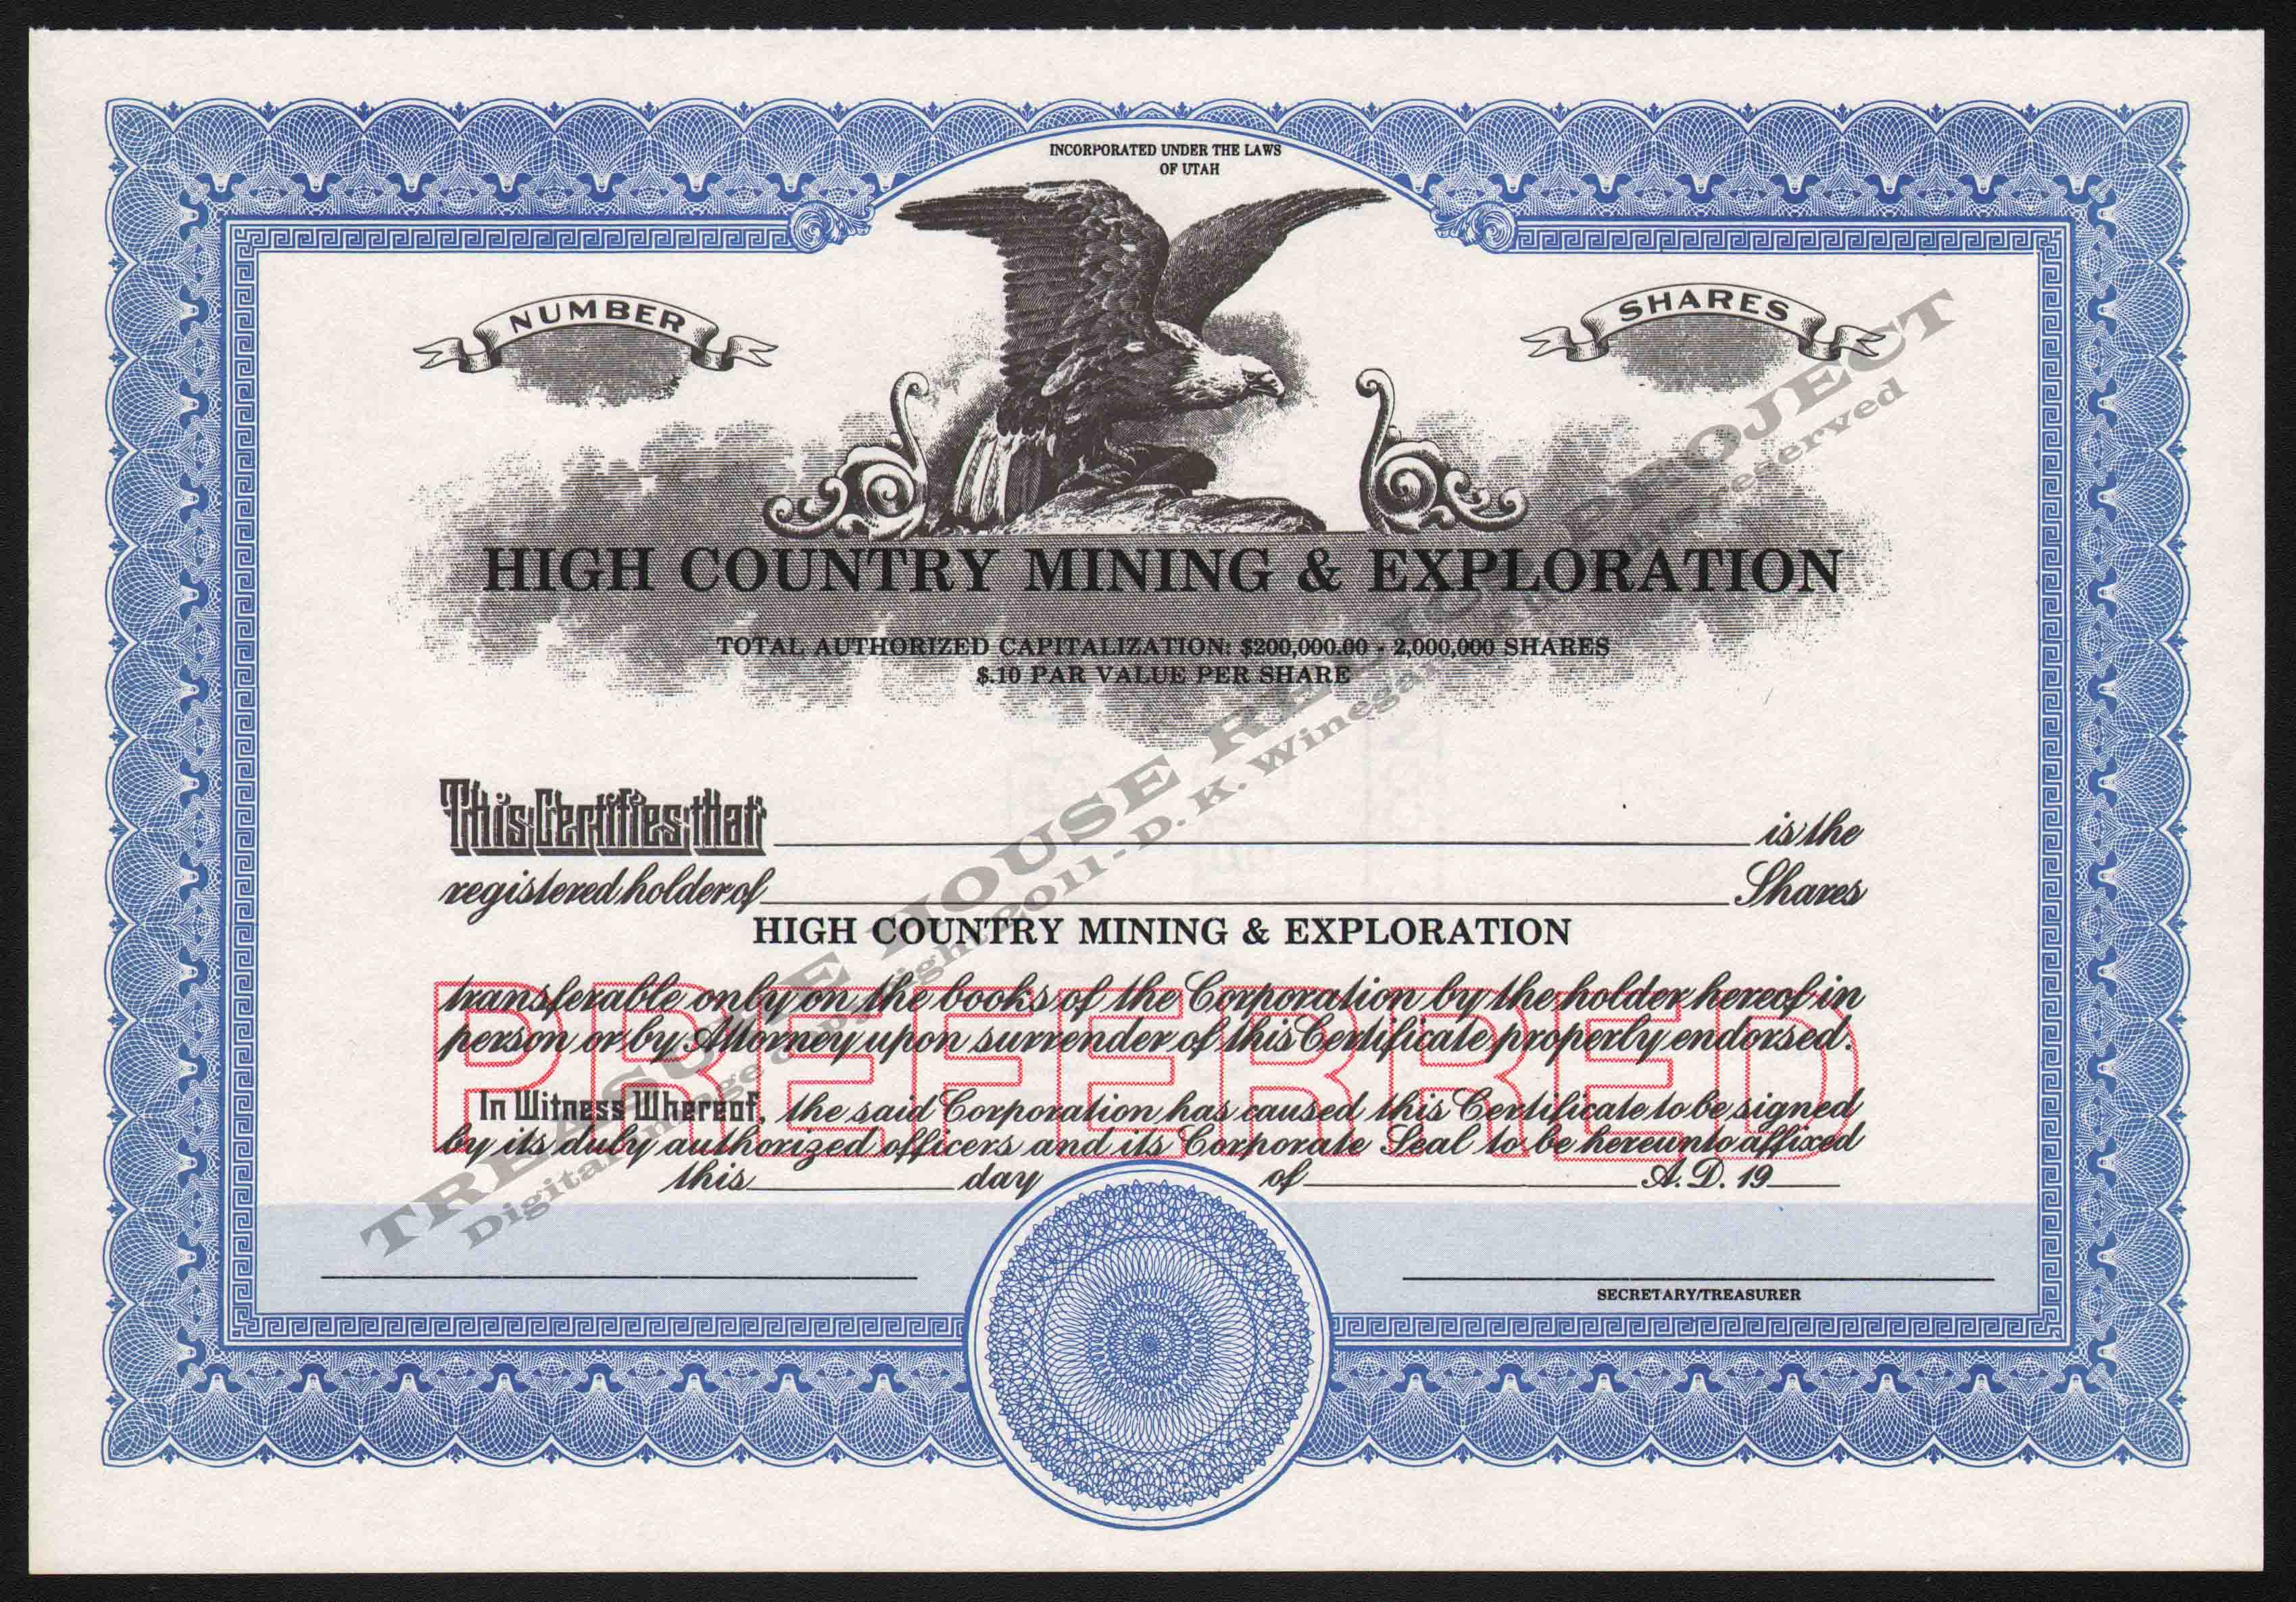 HIGH_COUNTRY_MINING_EXP_PREFERRED_NNPS_300_emboss.jpg